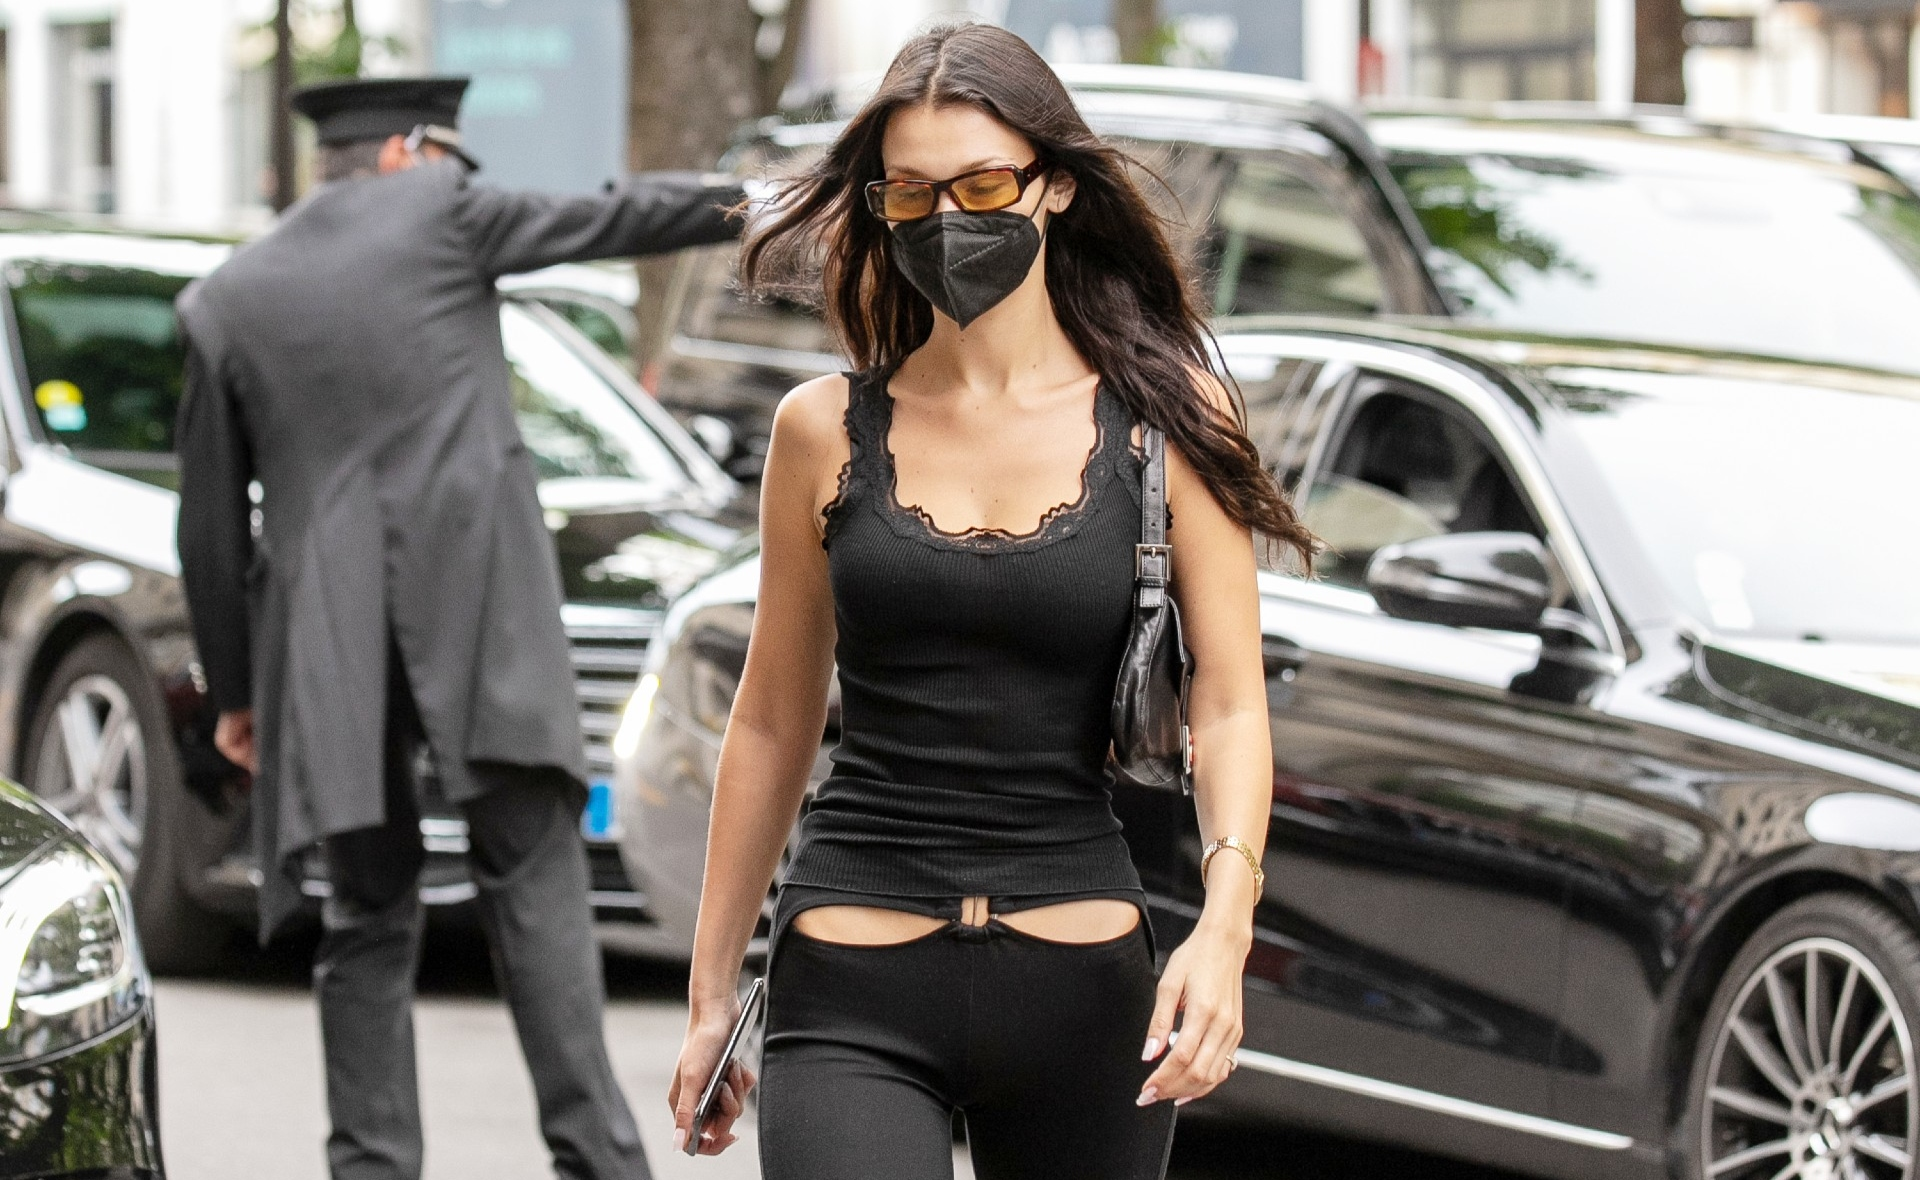 Pelvic Cutouts Are The Latest Trend To Get The Celebrity Seal Of Approval